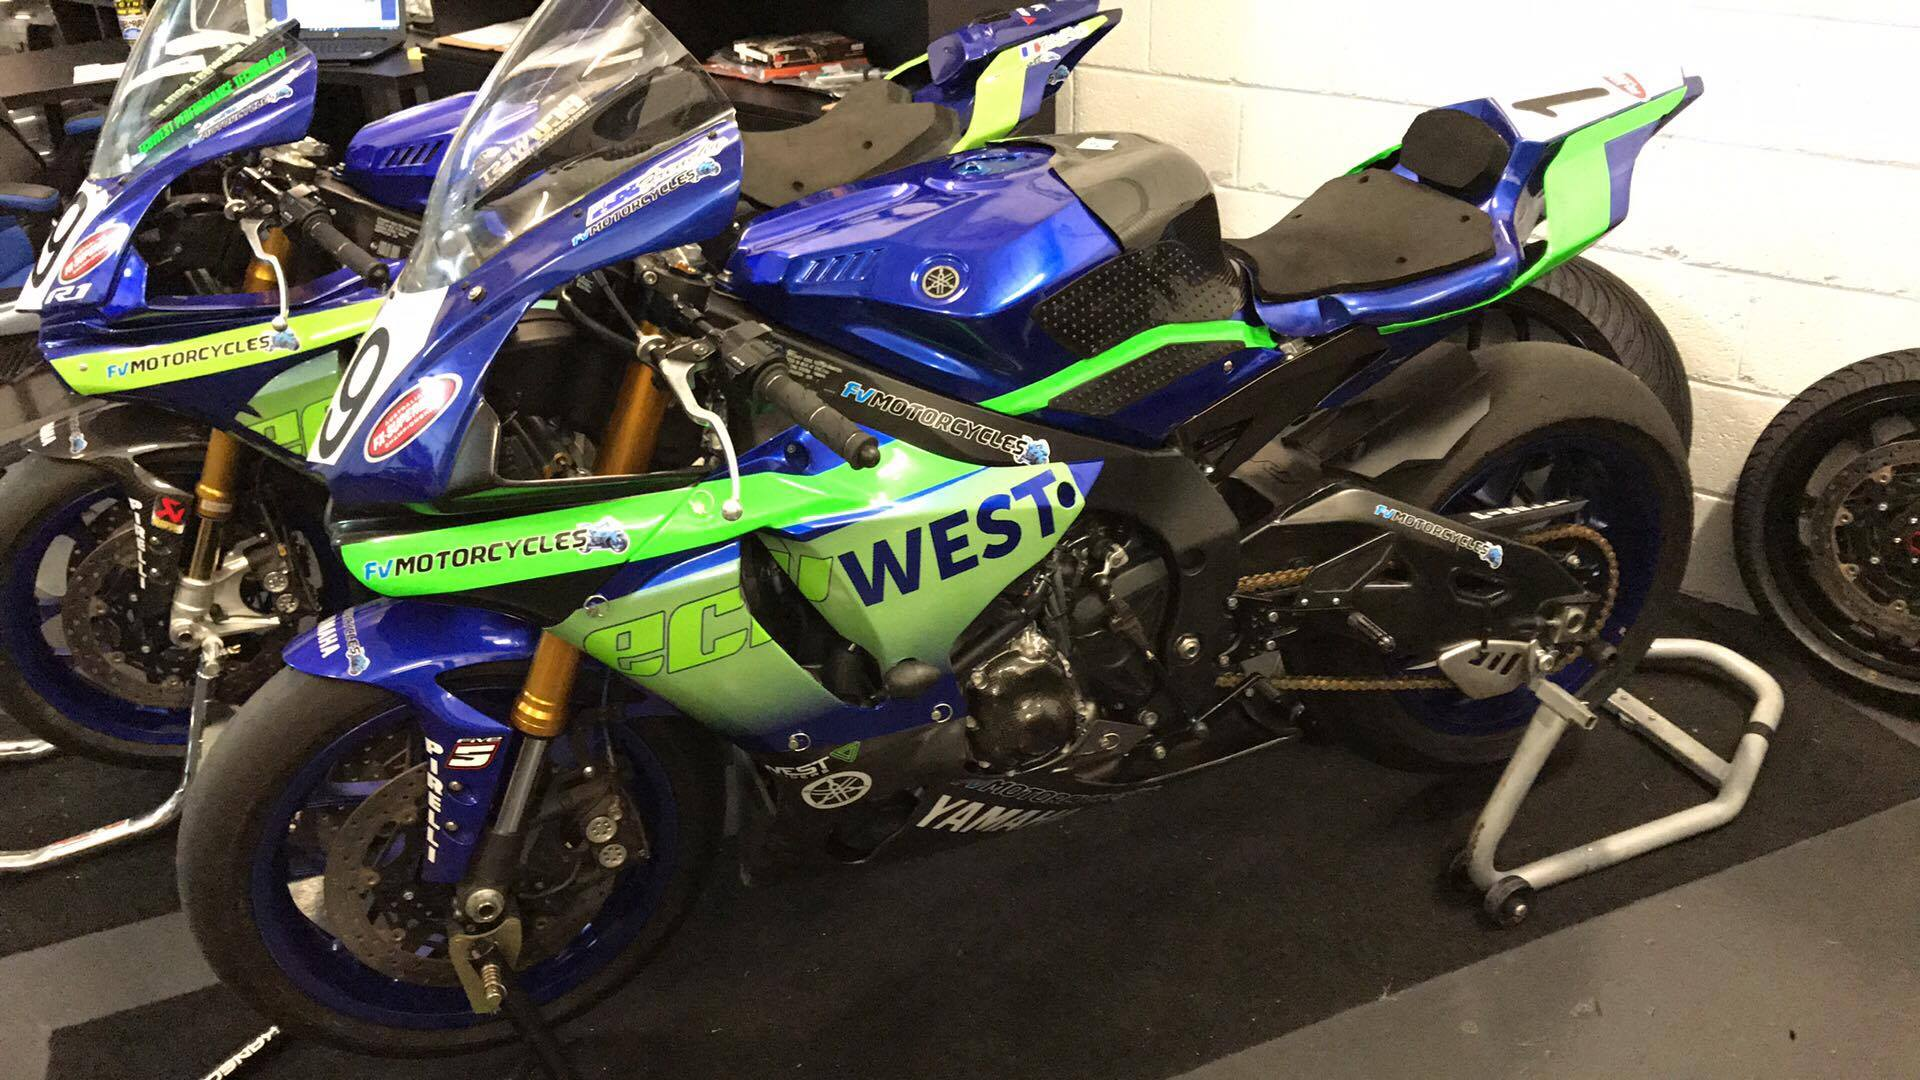 Yamaha R1 2015 Transformation Project Here ECU West Also Runs Great Courses On AlienTech Products And ECM Drivers To Learn How Properly Map Tune